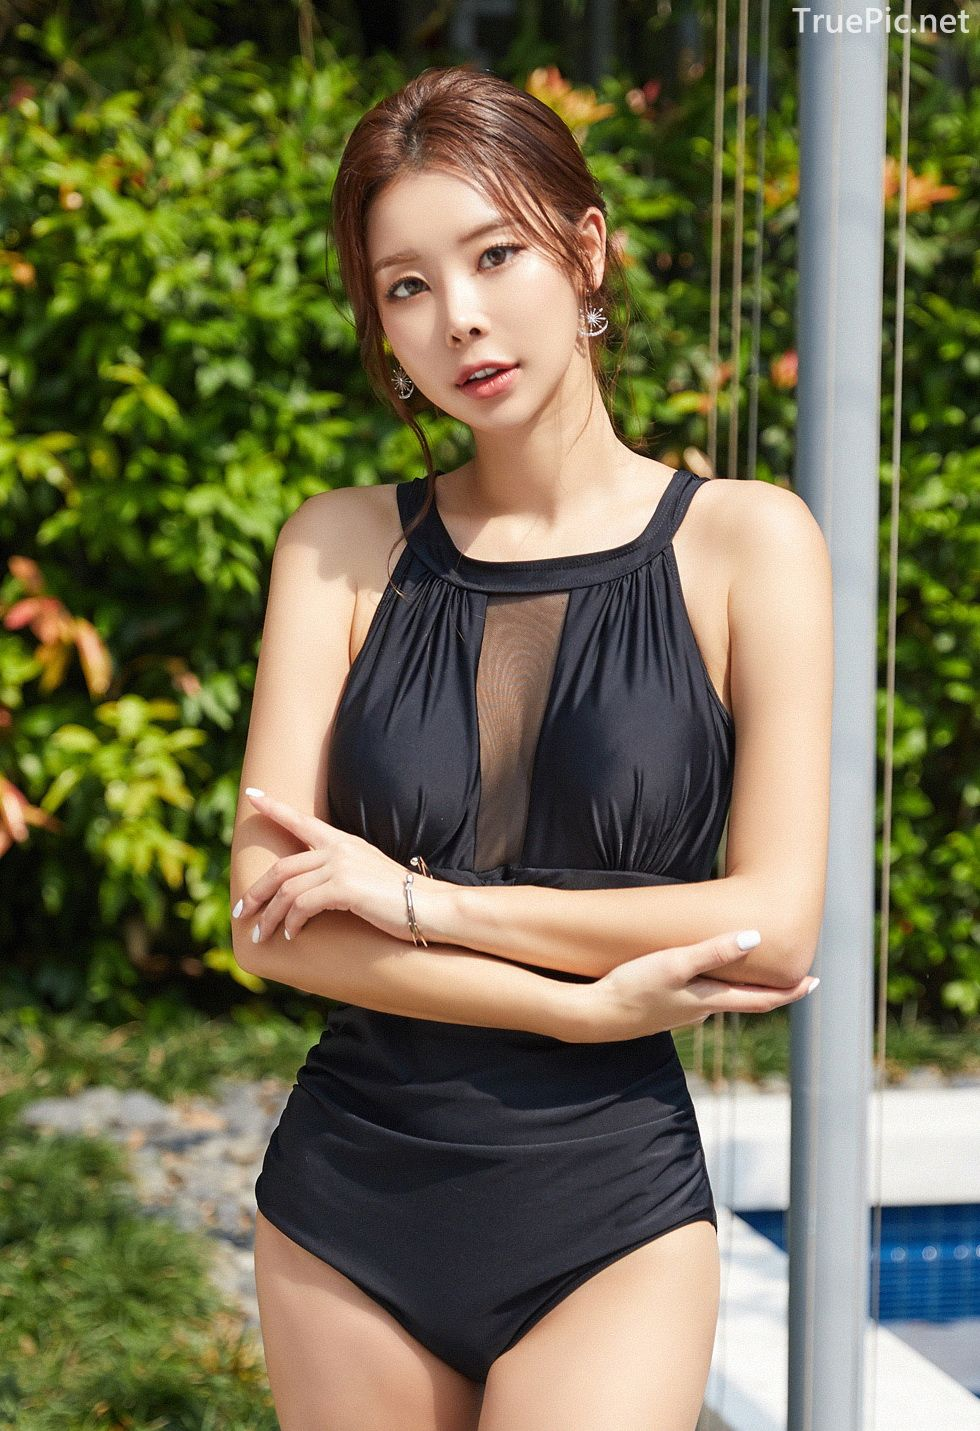 Korean model and fashion - Park Da Hyun - Chloesee Swimsuit Set - Picture 2